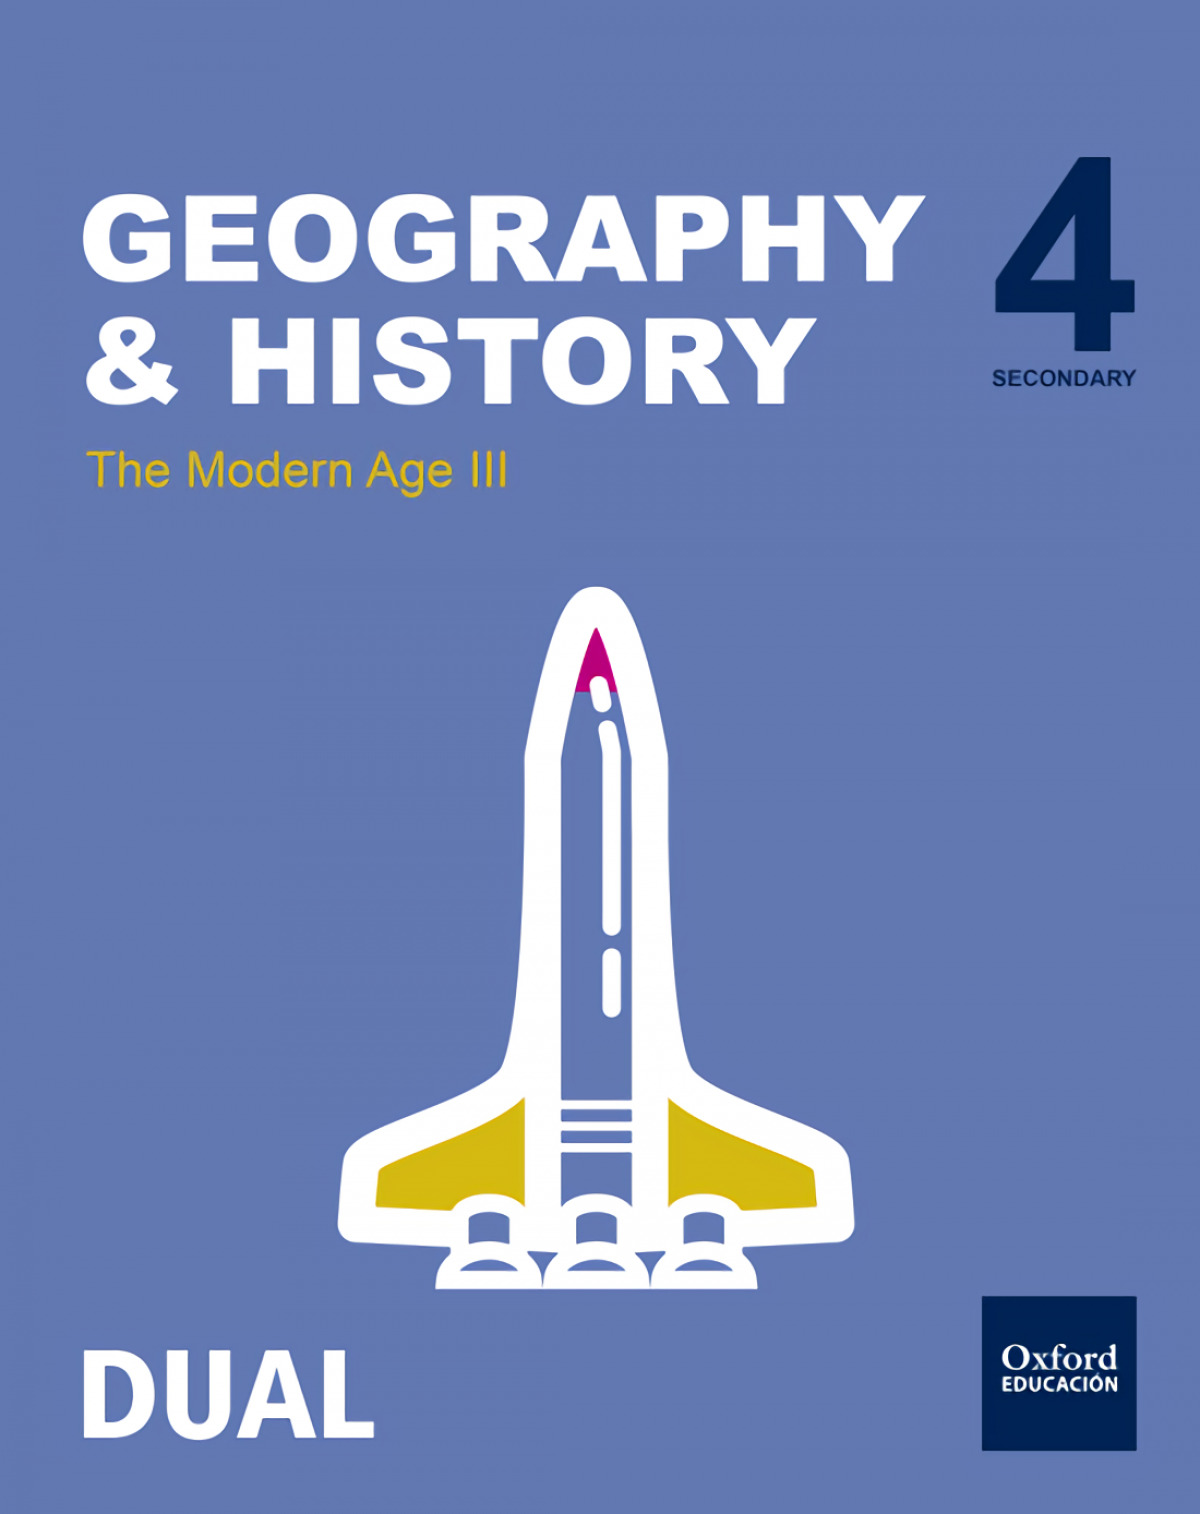 16).geography history 4ºeso vol.3 (inicia) dual - Fernández Armijo, M.ª Isabel